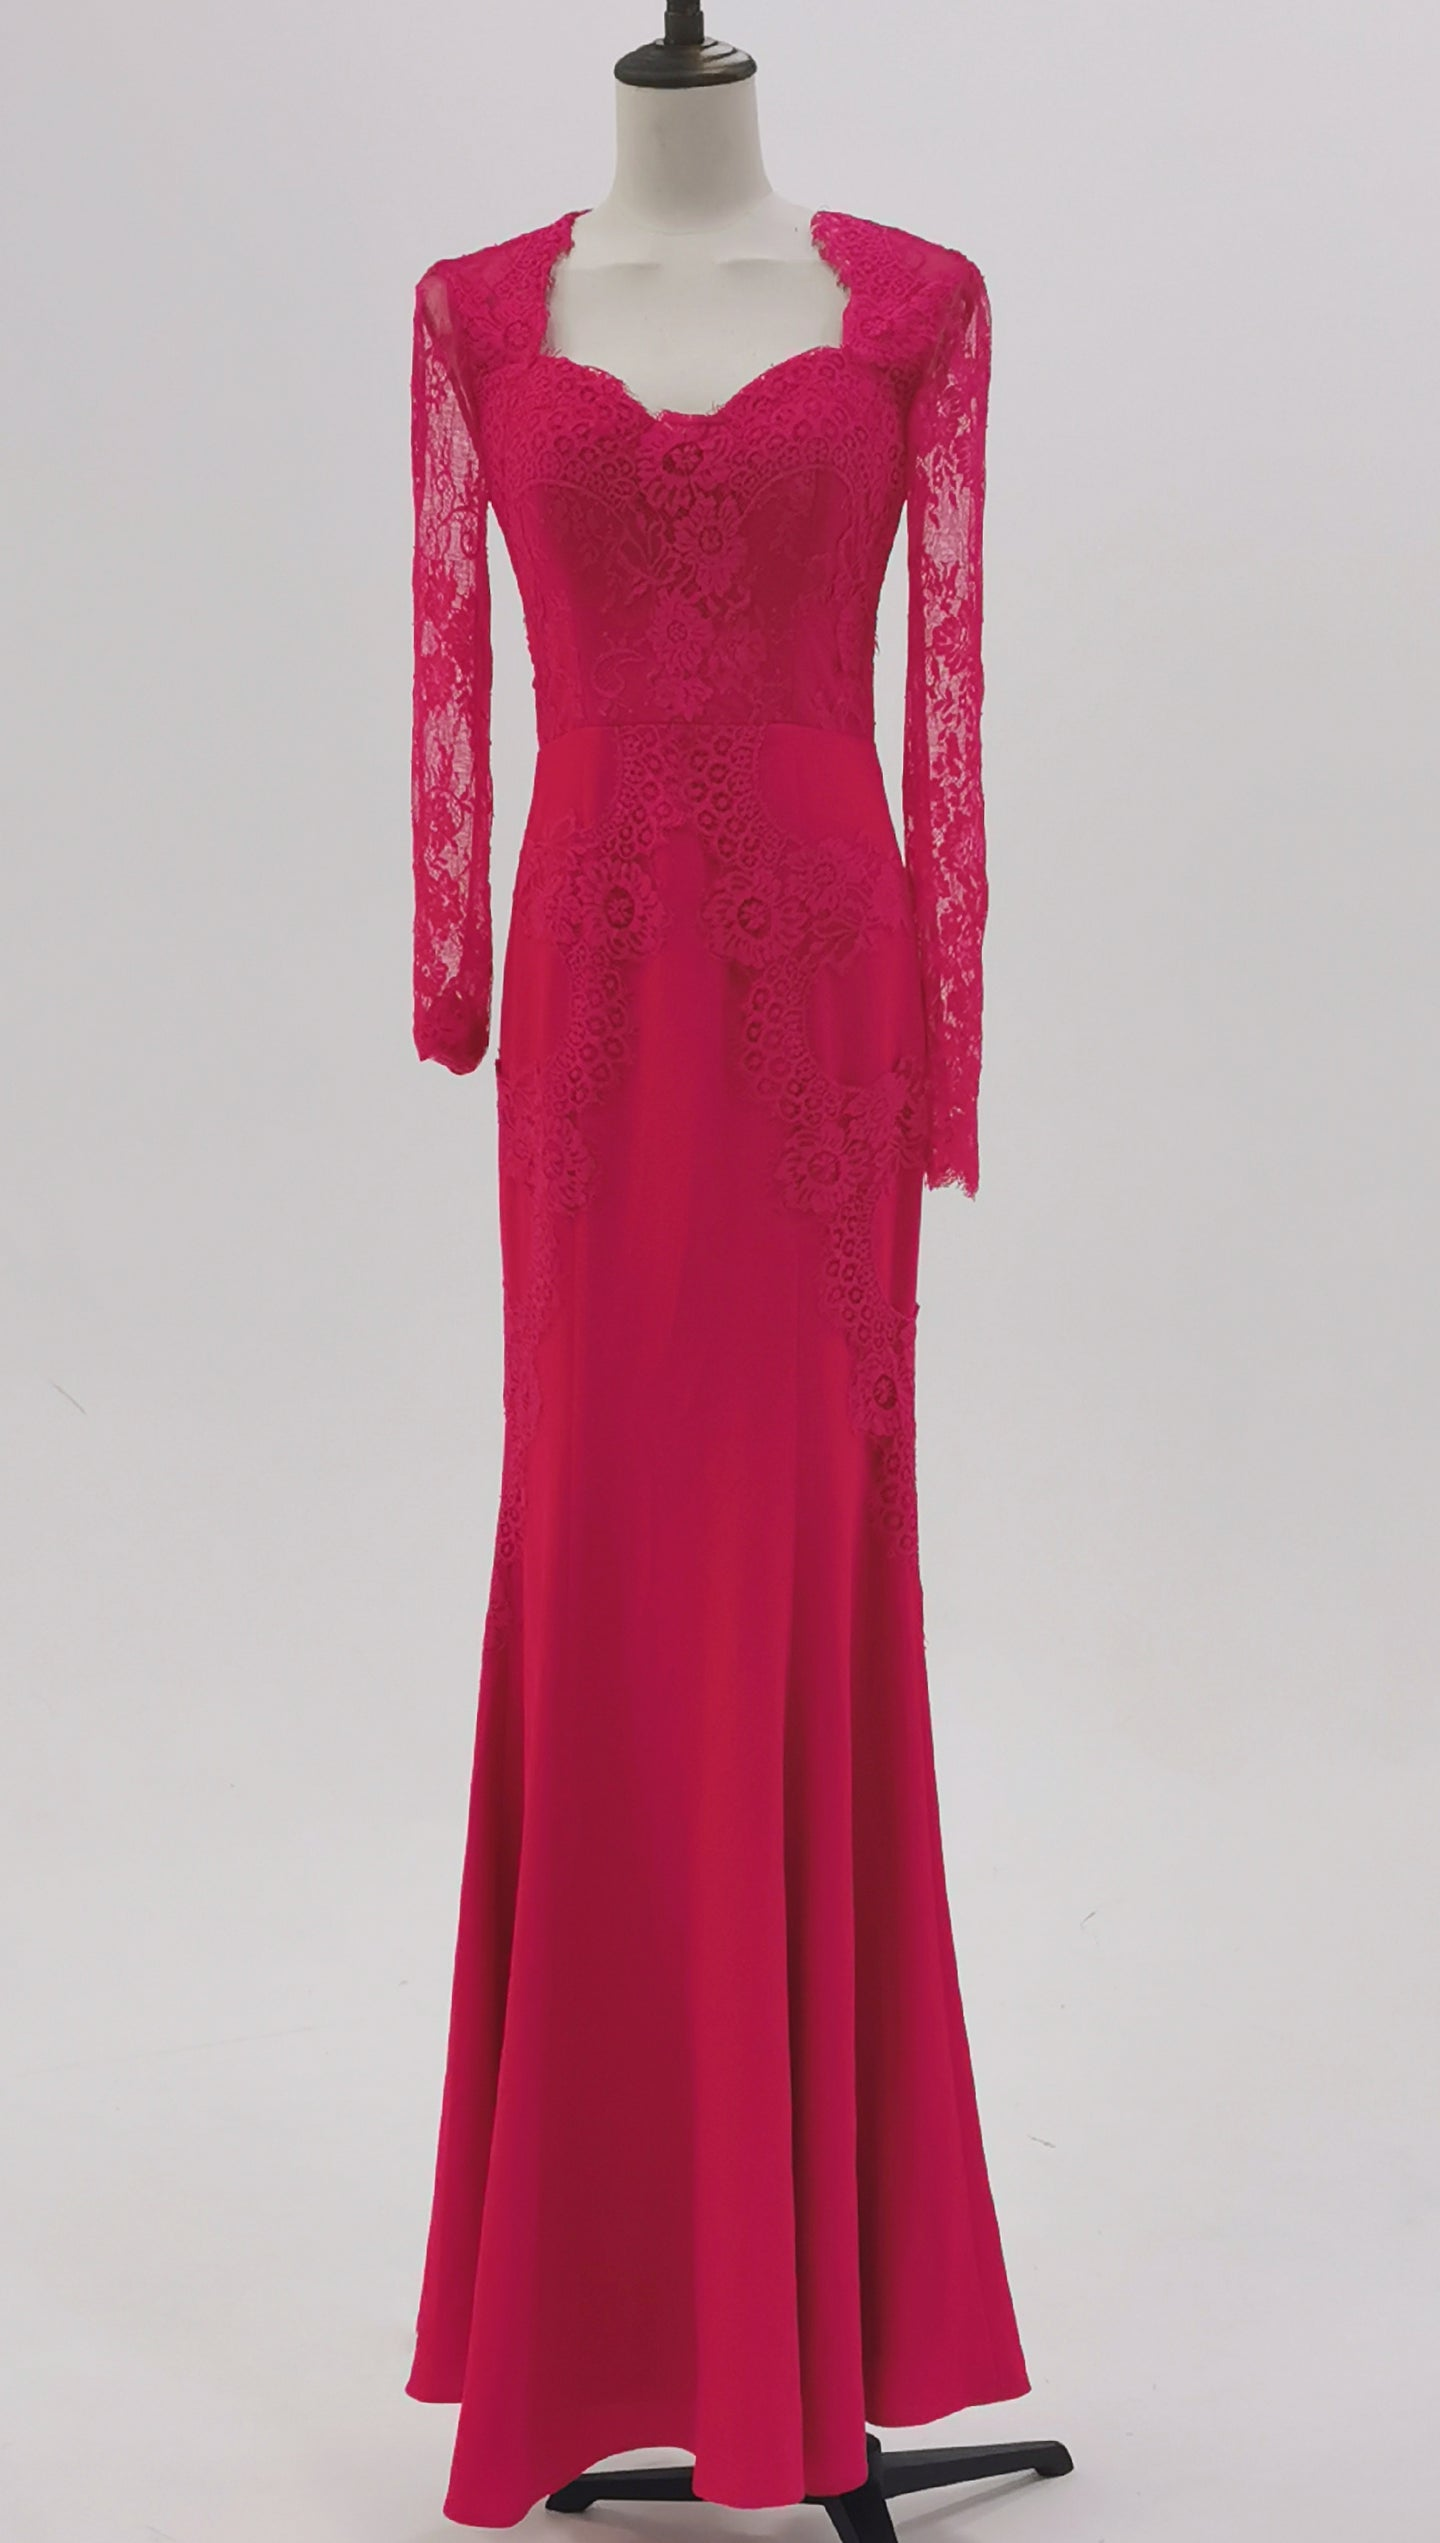 Red Netting Gown